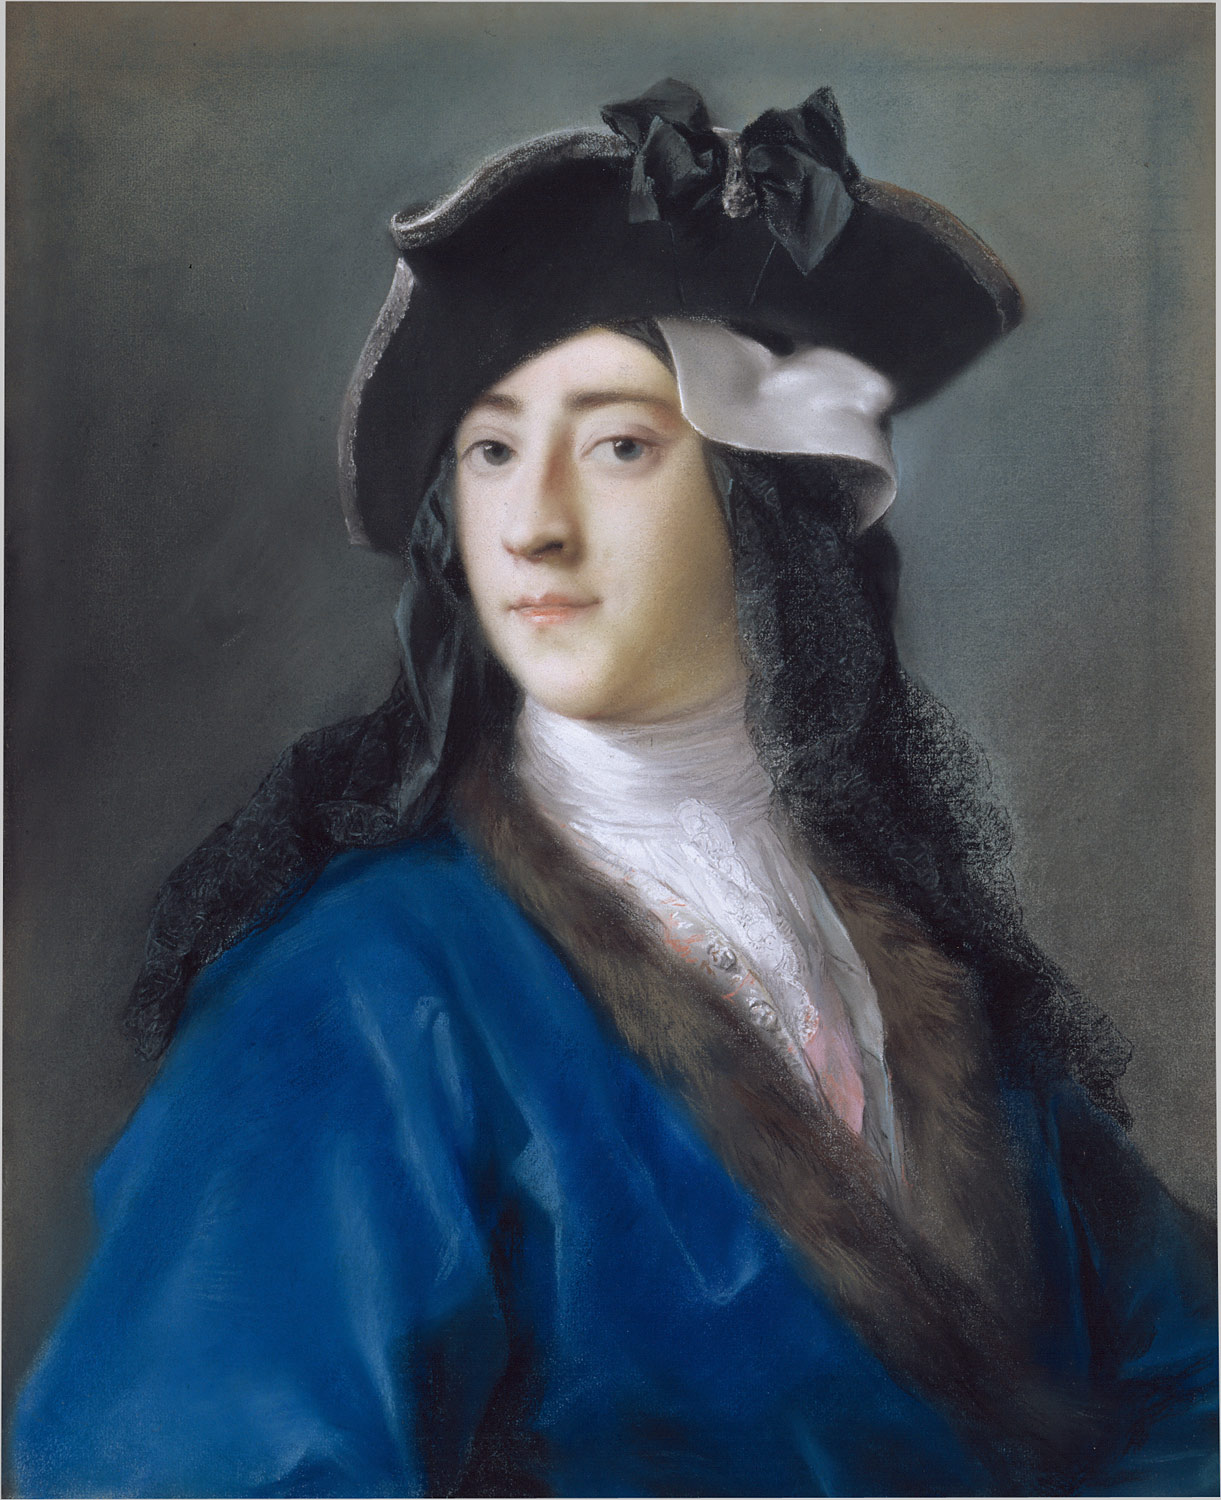 Gustavus Hamilton (1710-1746), Second Viscount Boyne, in Masquerade Costume